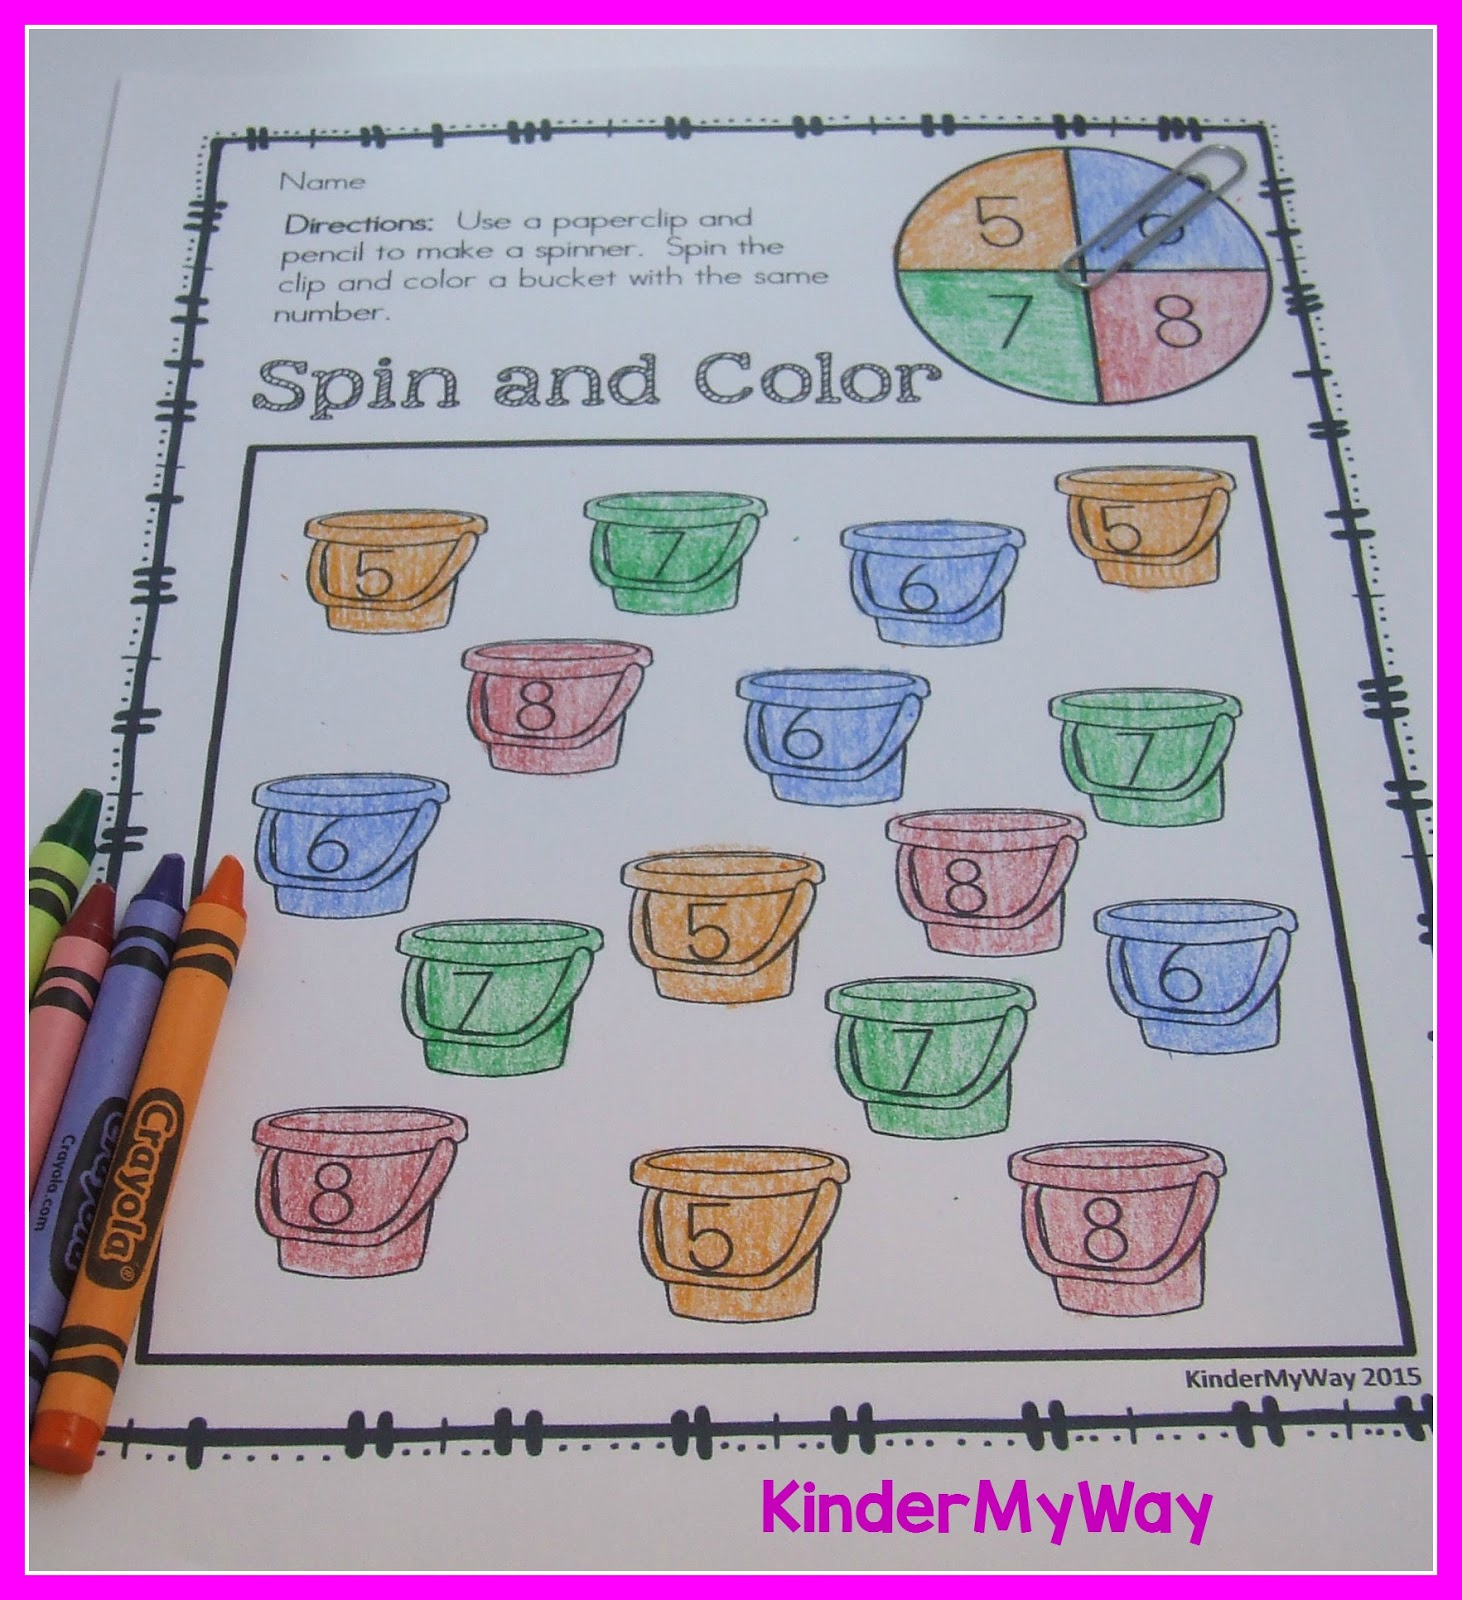 Kindermyway How To Prepare For Kindergarten Plus A Giveaway